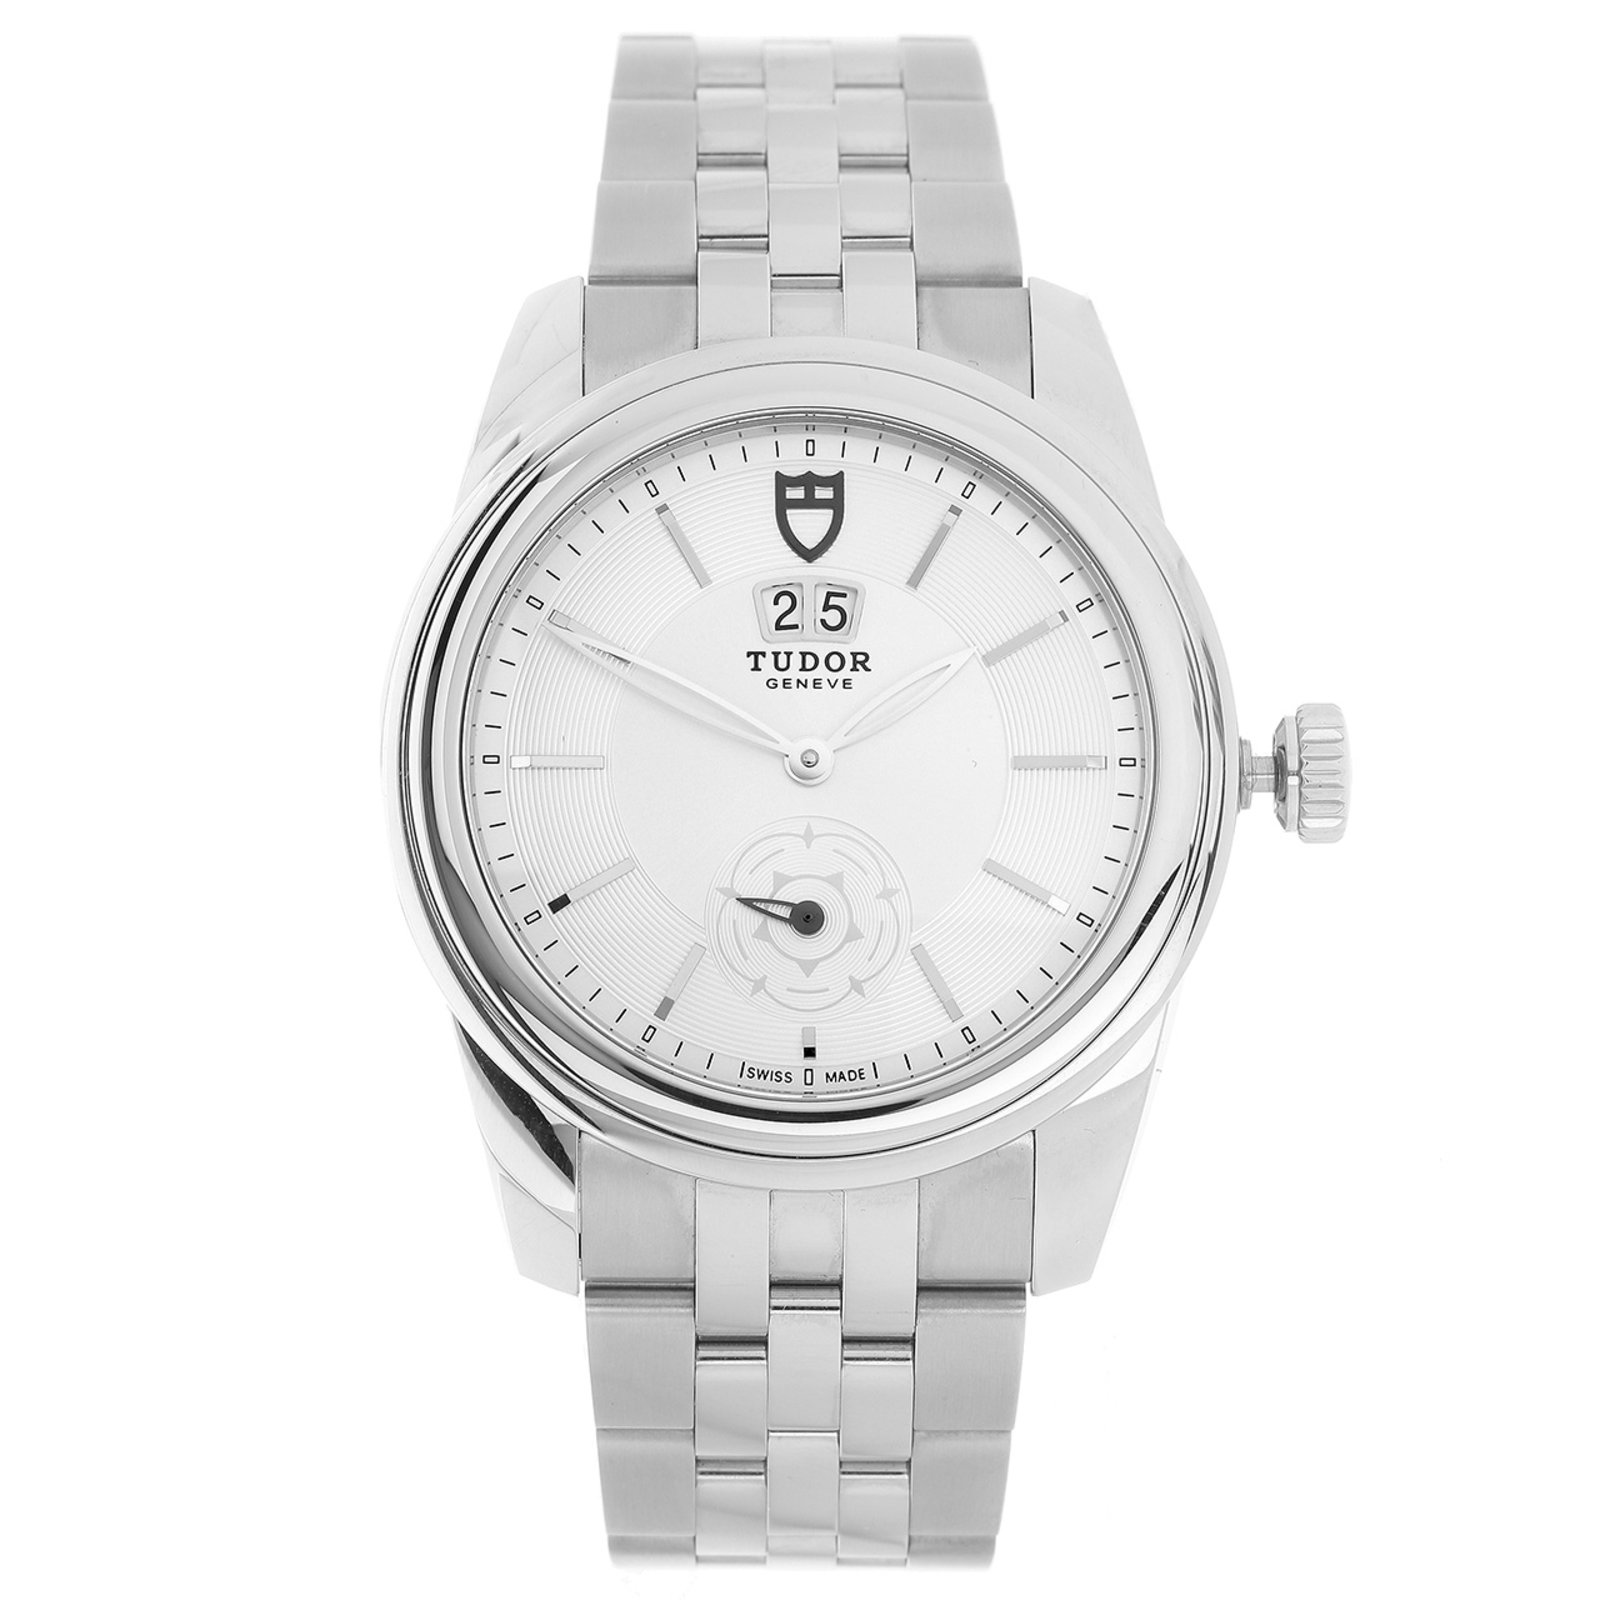 Pre-Owned Tudor Glamour Men's Watch, Circa 2014